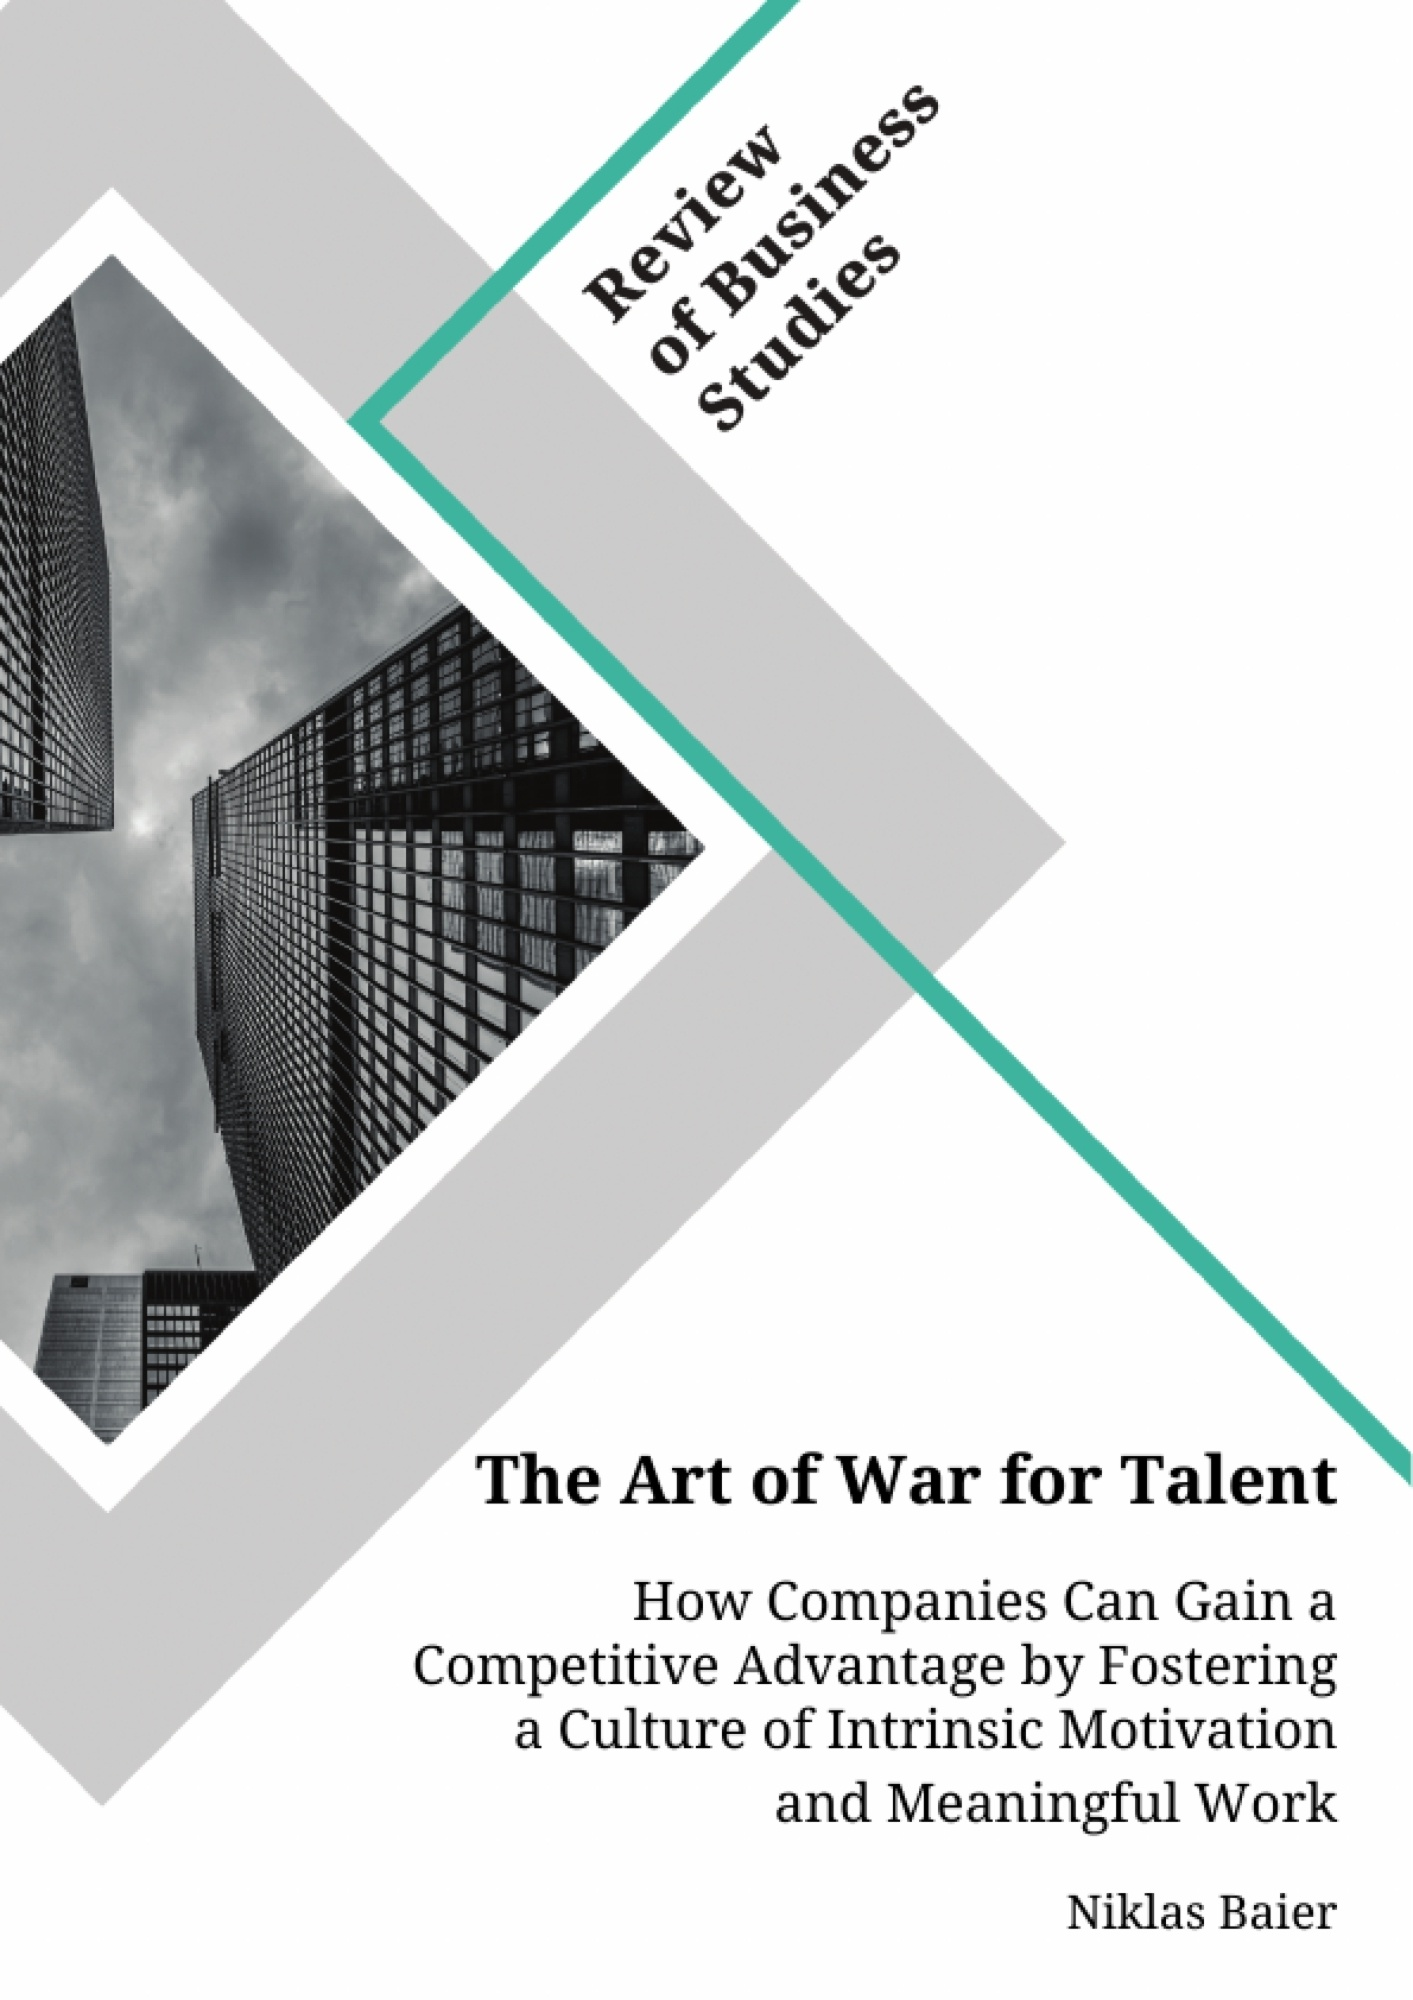 Titel: The Art of War for Talent. How Companies Can Gain a Competitive Advantage by Fostering a Culture of Intrinsic Motivation and Meaningful Work